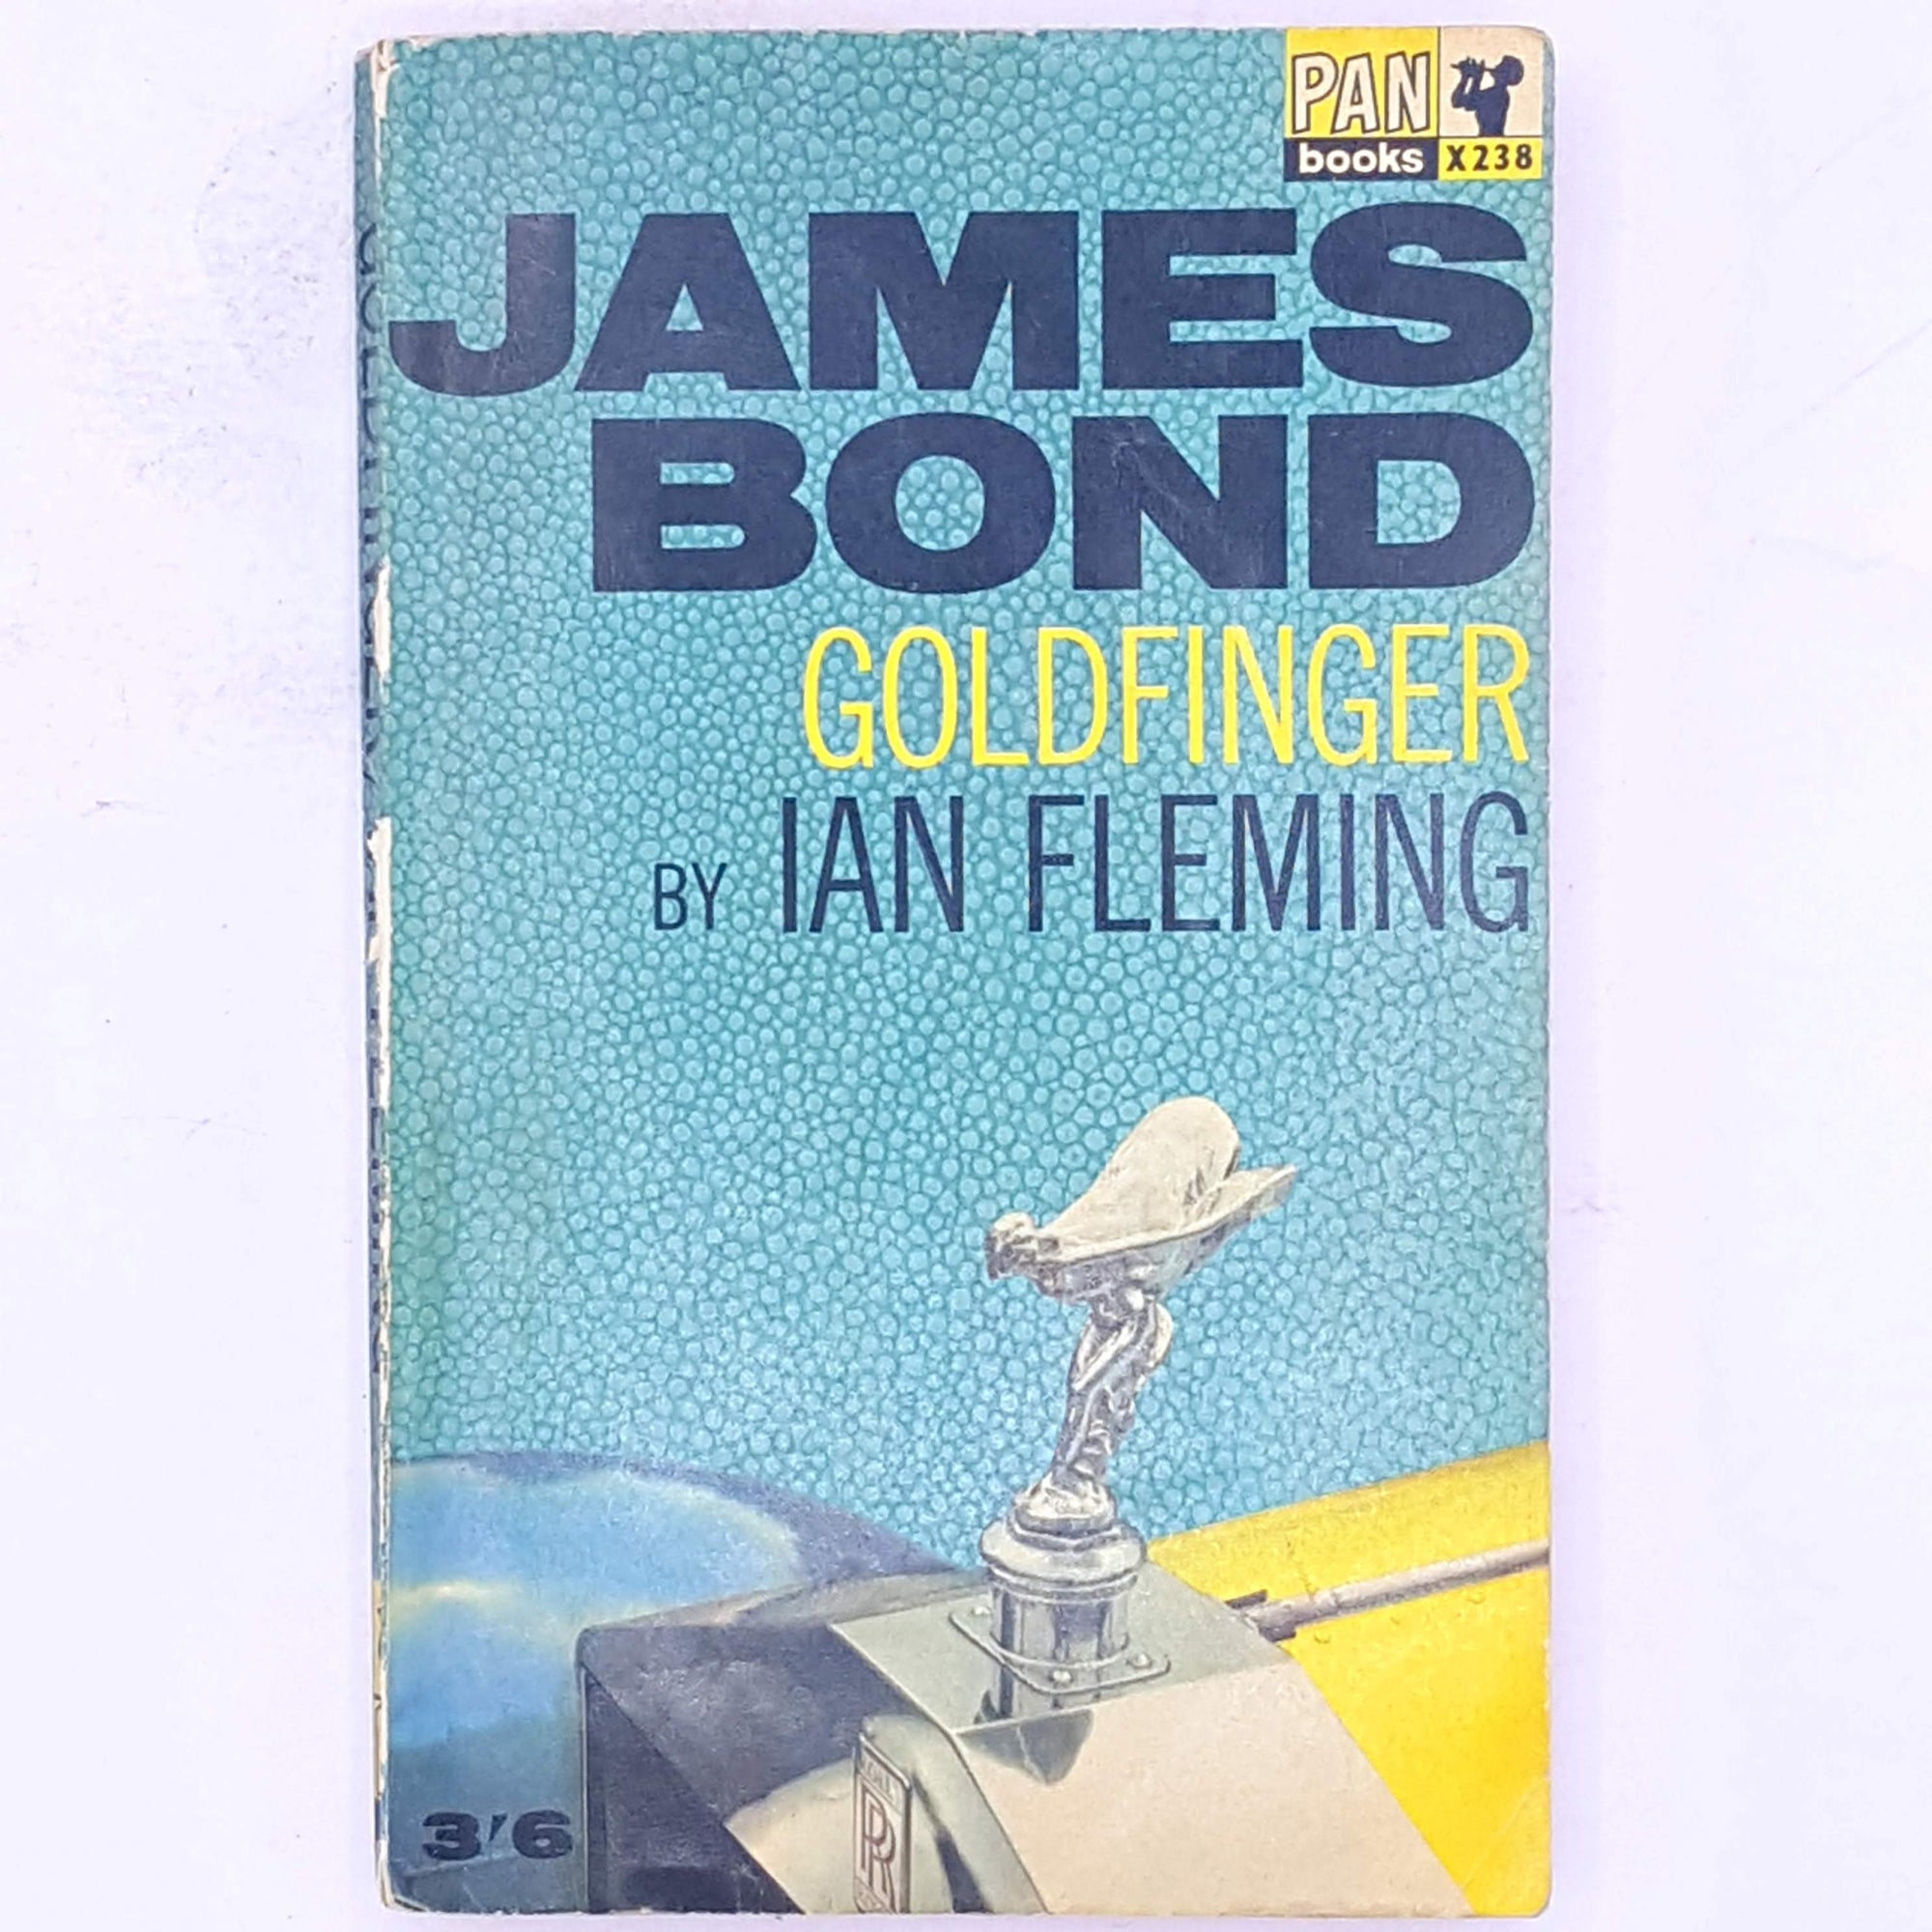 patterned-British-secret-agent-classic-antique-007-goldfinger-spy-crime-mystery-james-bond-thrift-thriller-secret-service-books-ian-fleming-vintage-country-house-library-decorative-old-